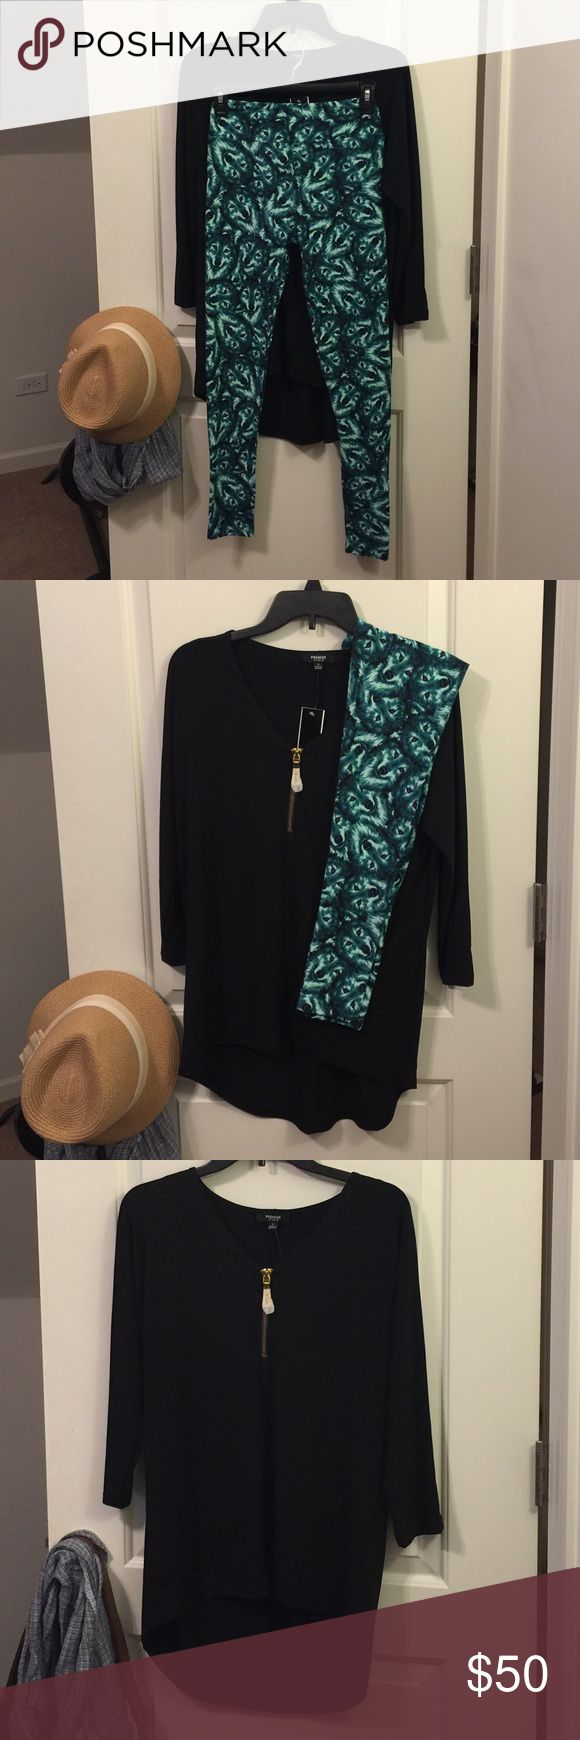 Premise Studio Hi-Lo Tunic & OS LulaRoe Leggings TOP - made in VietnamNWTBlack hi-lo tunic with 3/4 sleevesStretchy material, 95% Polyester 5% SpandexSize Small.  LEGGINGS - made in China. Part of my Unicorn Vault Collection bought directly from various LulaRoe Consultants only. NWT, Hard-To-Find Wolves  Prints.  Runs small around the waist.   ***Sold as Combo or Individually   Combo Price:  $50.00 Top only:  $15.00 Leggings only:  $40.00  ❌ to Trades Premise Studio & LulaRoe Other